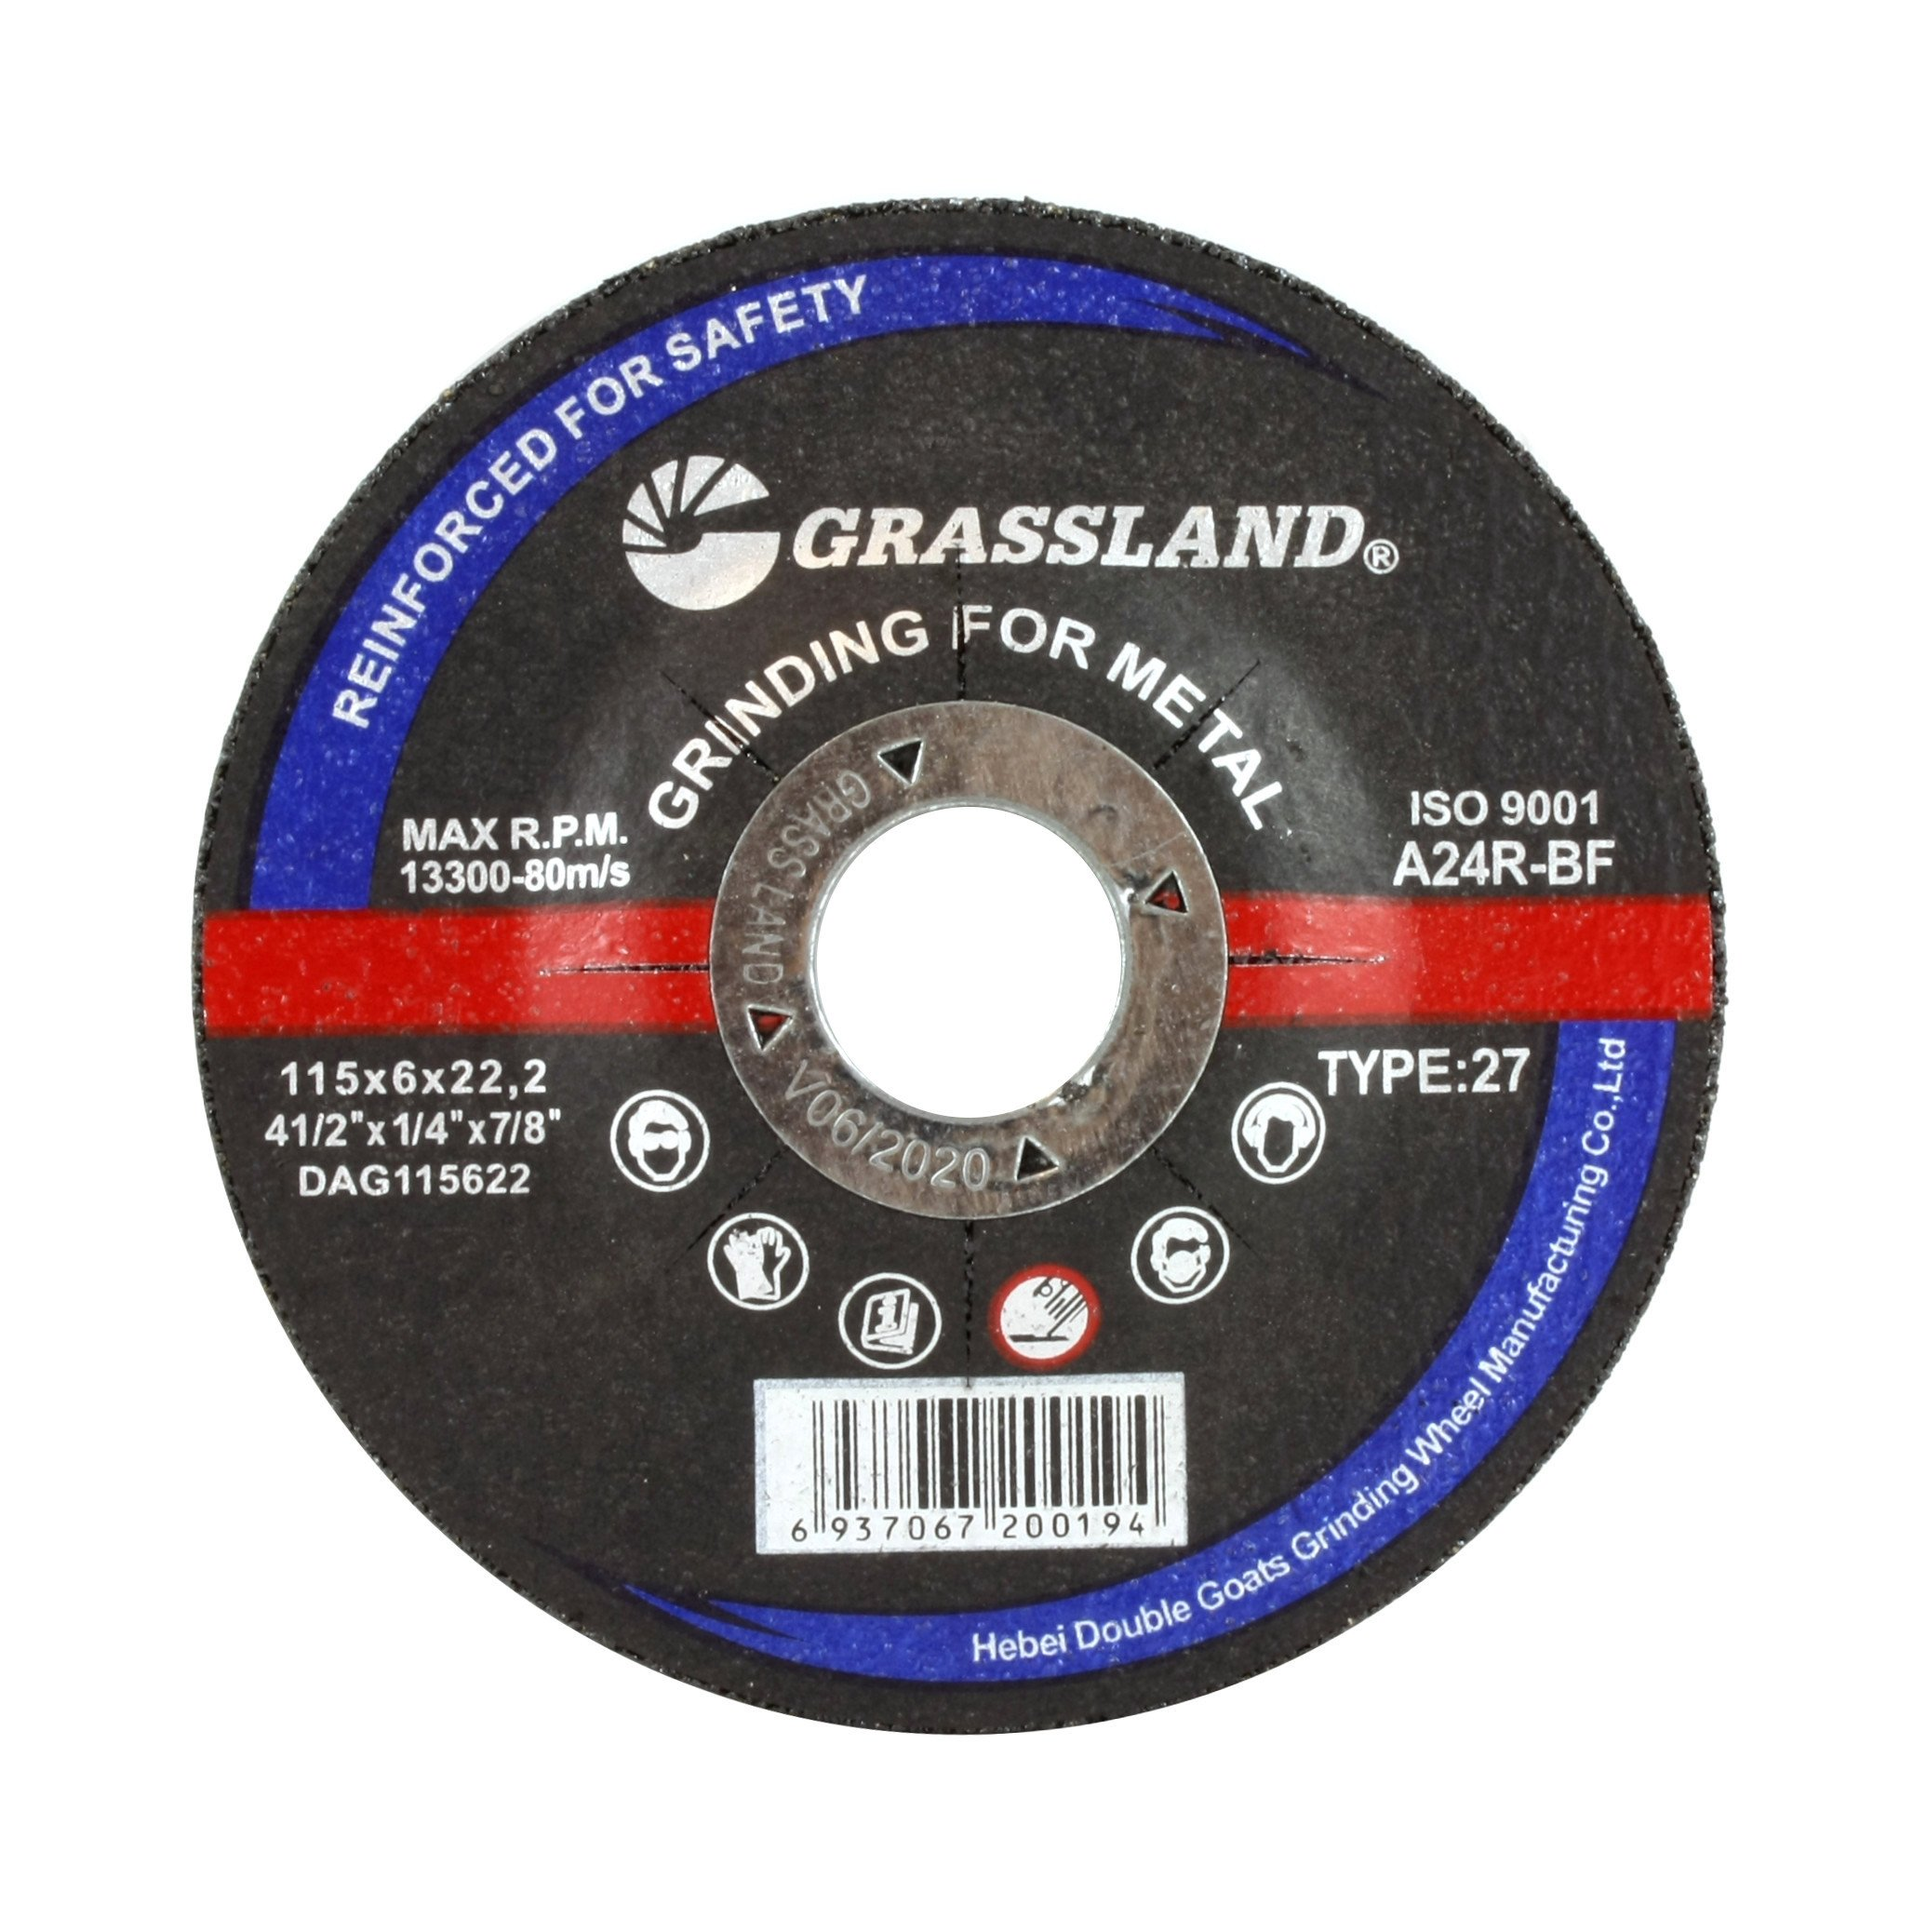 Grinding Disc, Steel Grinding wheel - 4-1/2'' x 1/4'' x 7/8'' - T27 - (50 PACK)